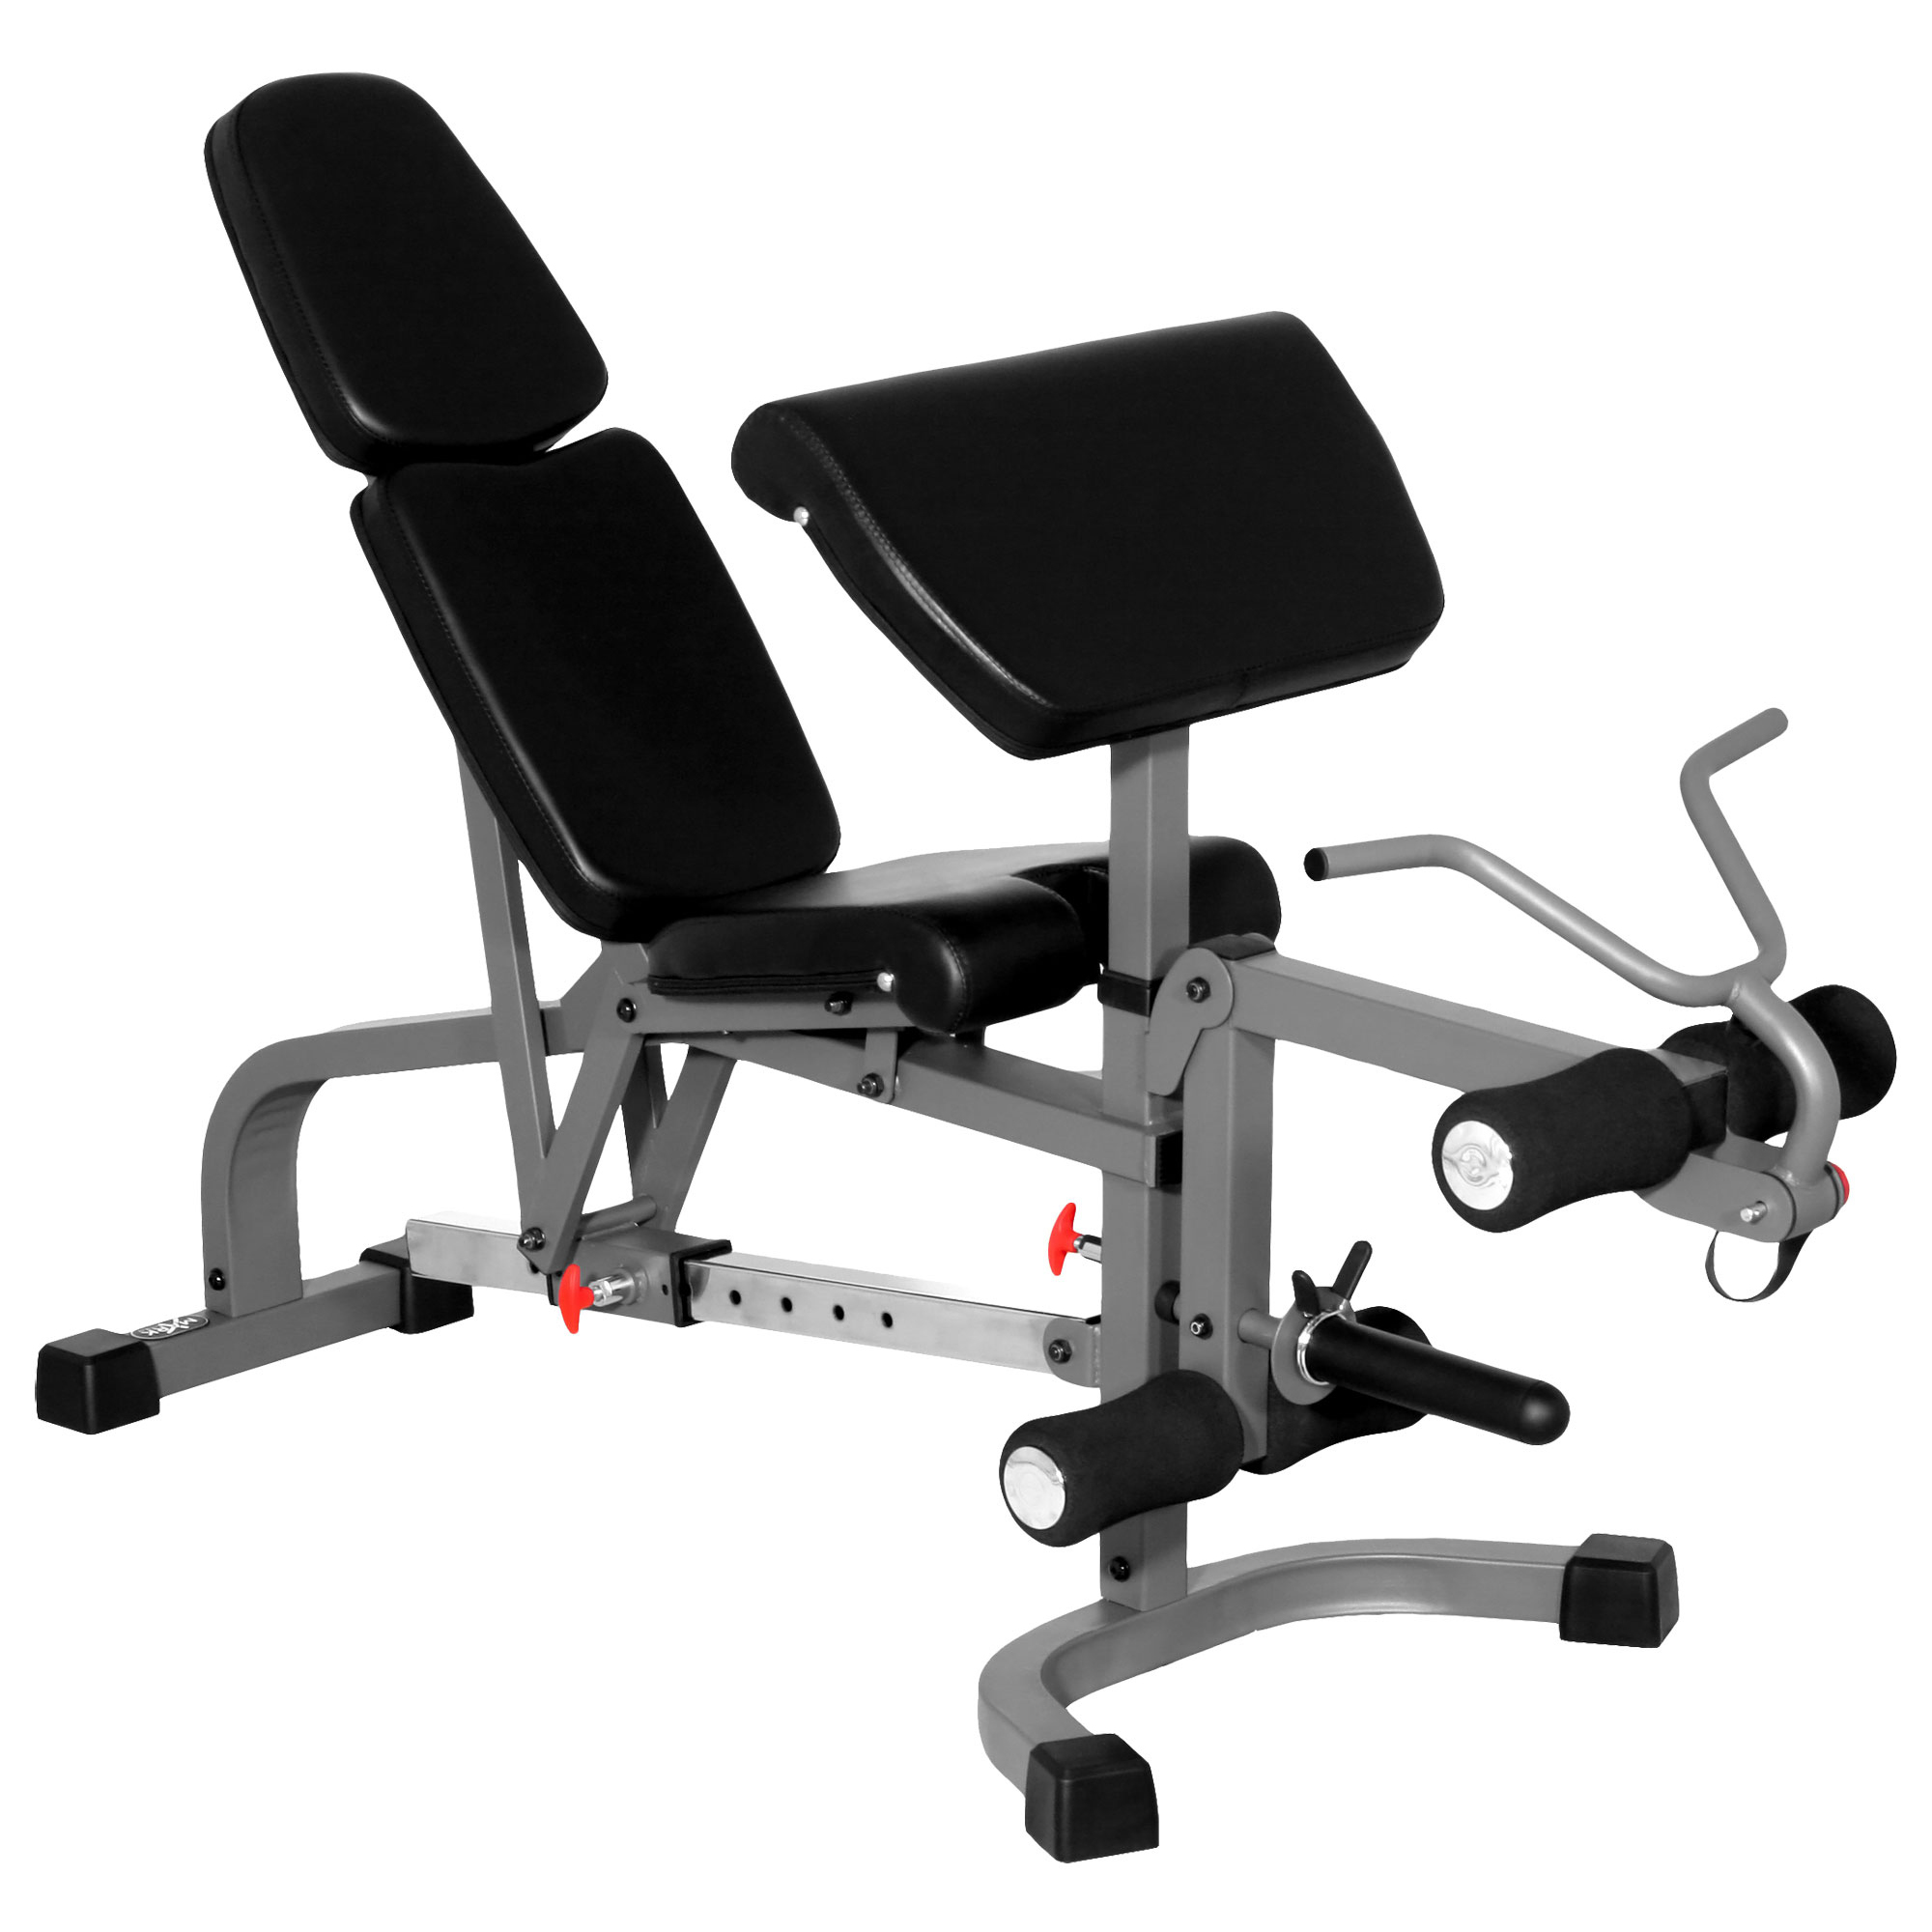 The X Mark Fid Flat Incline Decline Weight Bench With Leg